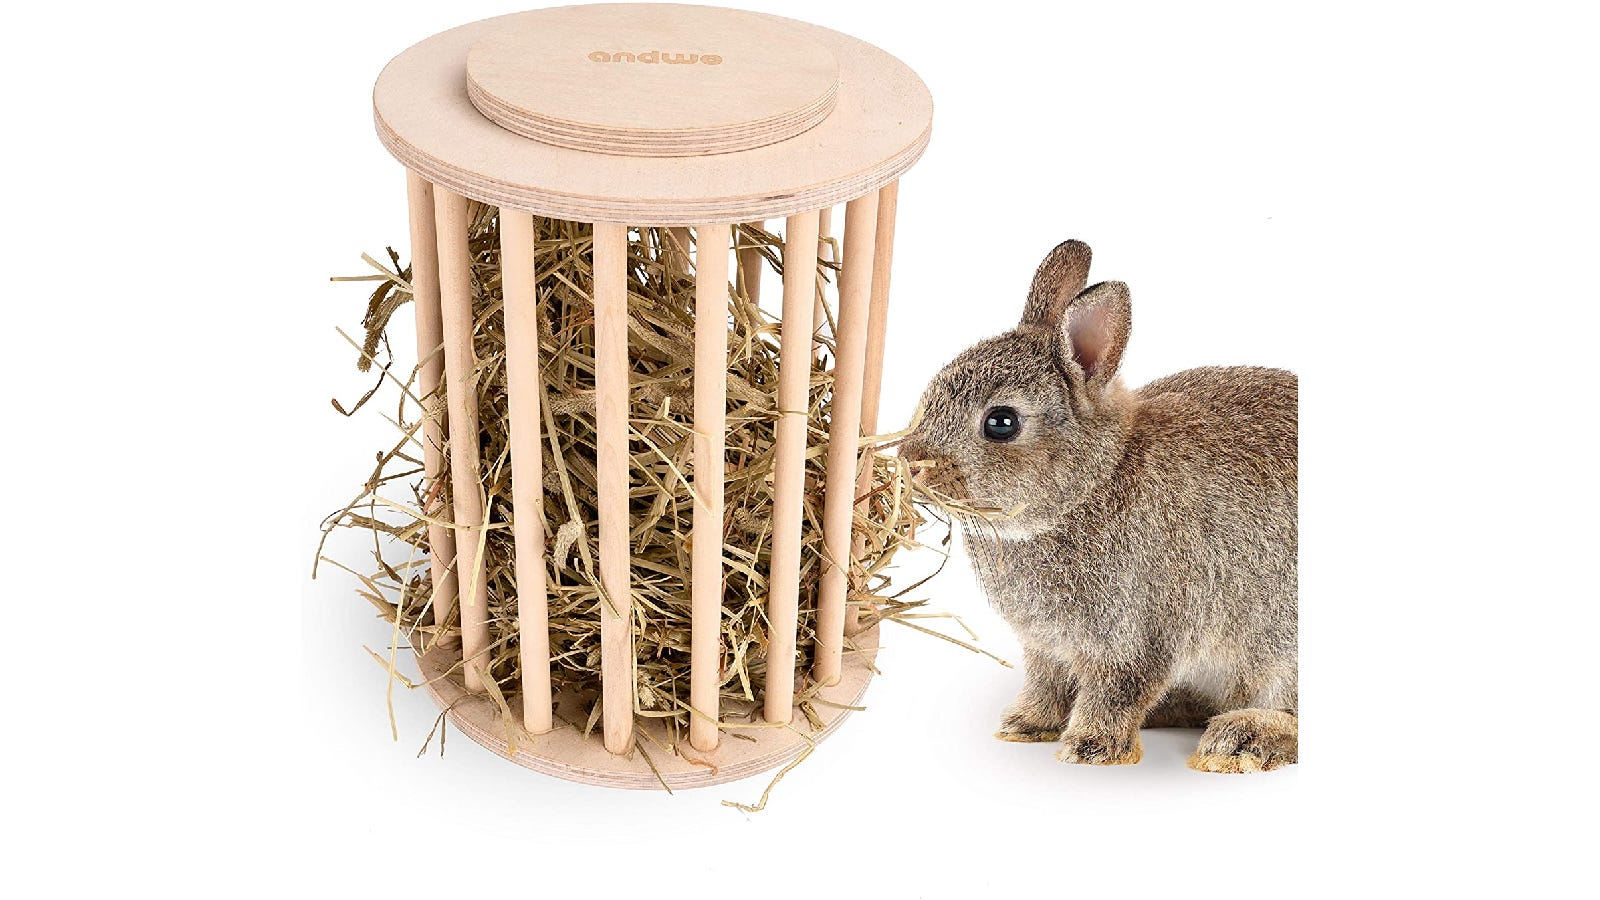 A brown bunny eating out of a round wooden hay feeder.